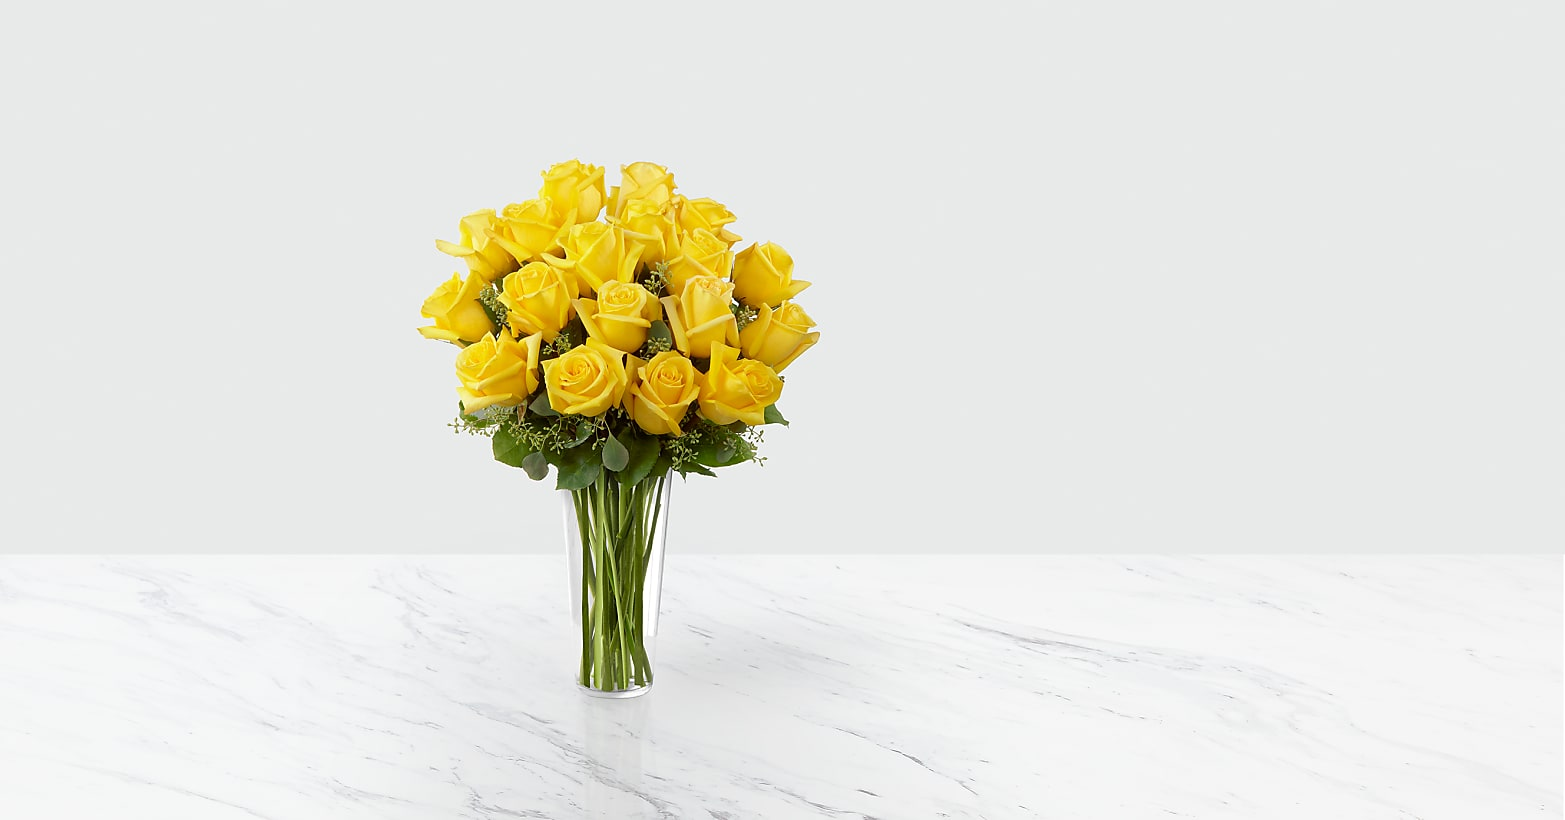 The Yellow Rose Bouquet - Image 1 Of 2